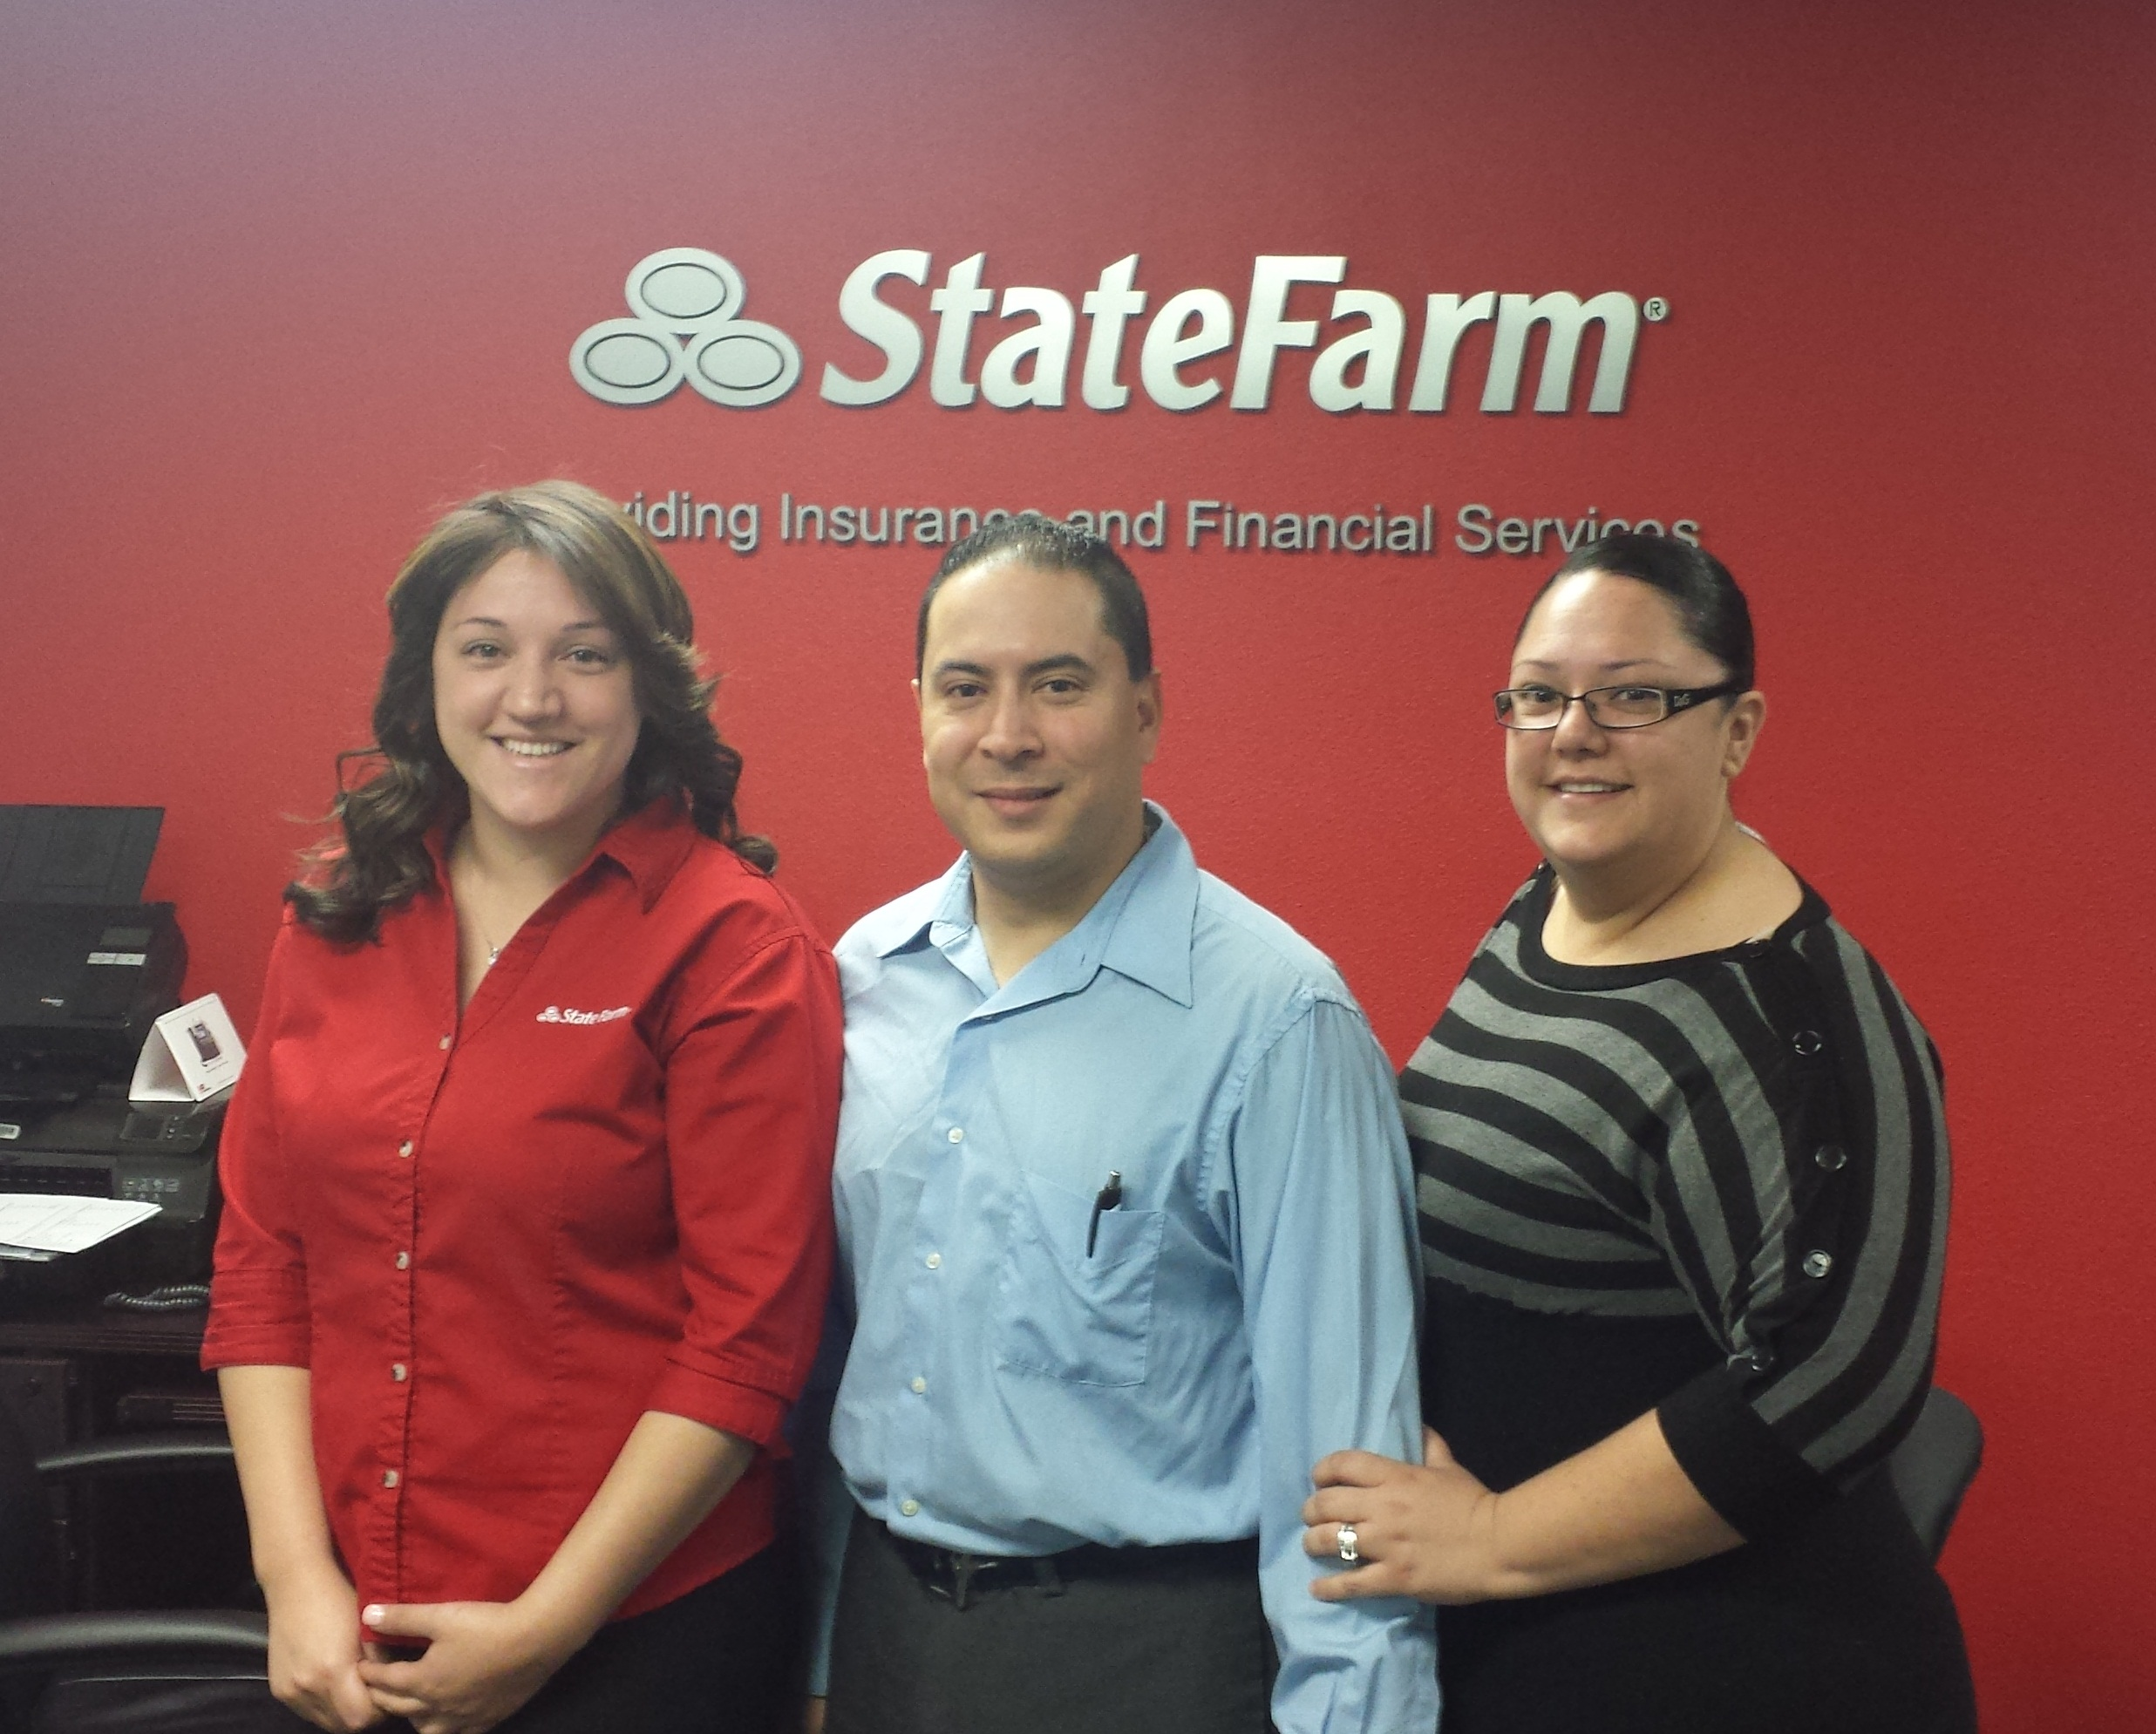 Account Manager State Farm Agent Team Member Base Salary Commission Josh Terraneau State Farm Agent